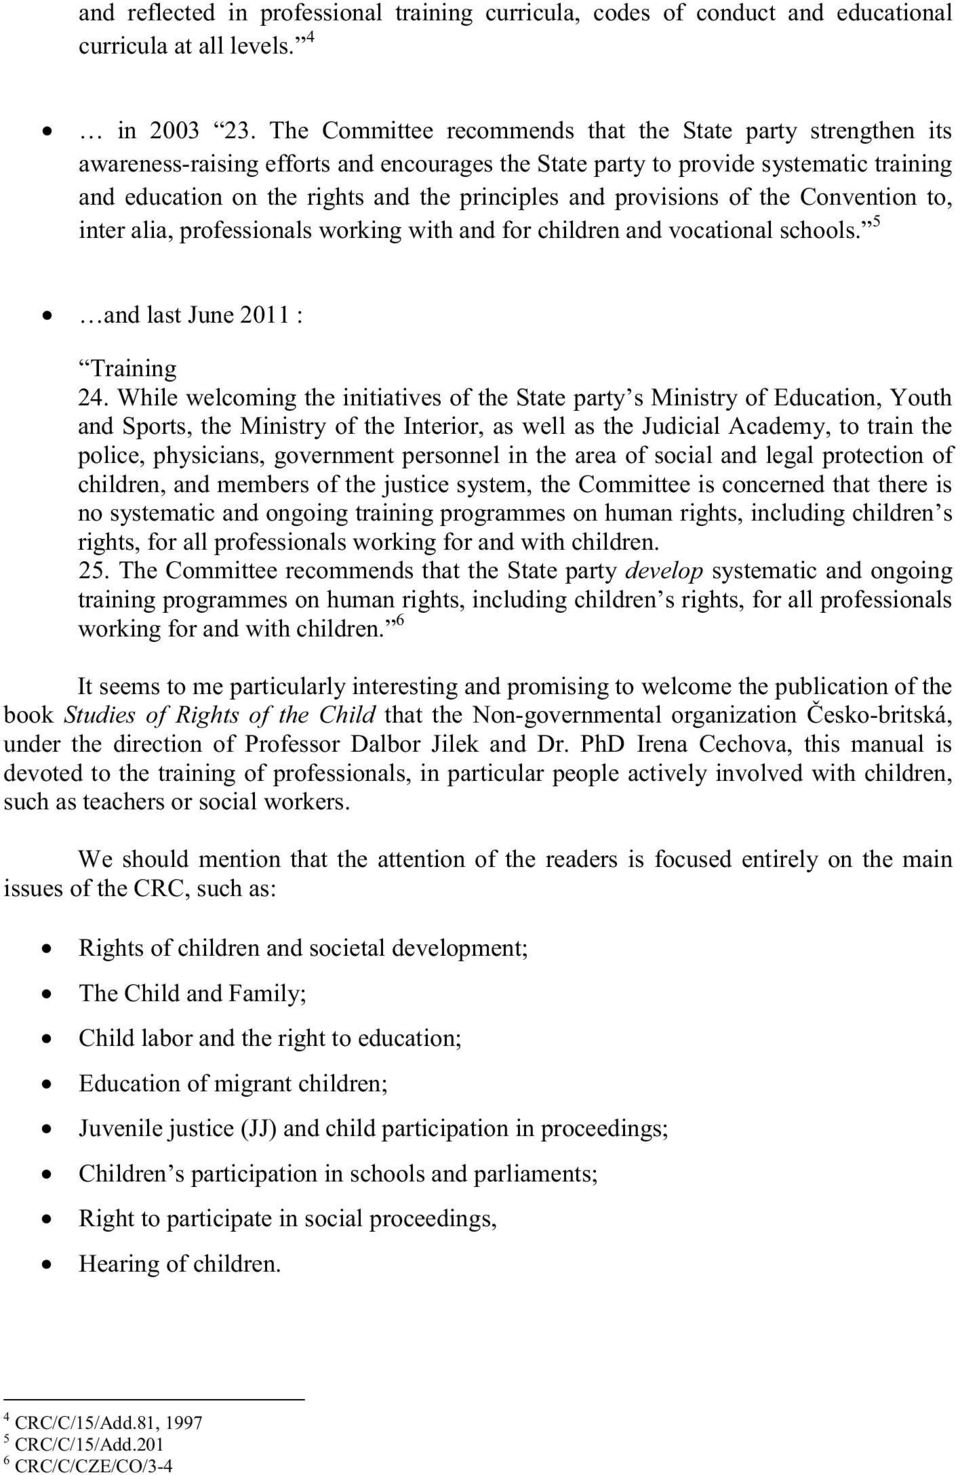 provisions of the Convention to, inter alia, professionals working with and for children and vocational schools. 5 and last June 2011 : Training 24.